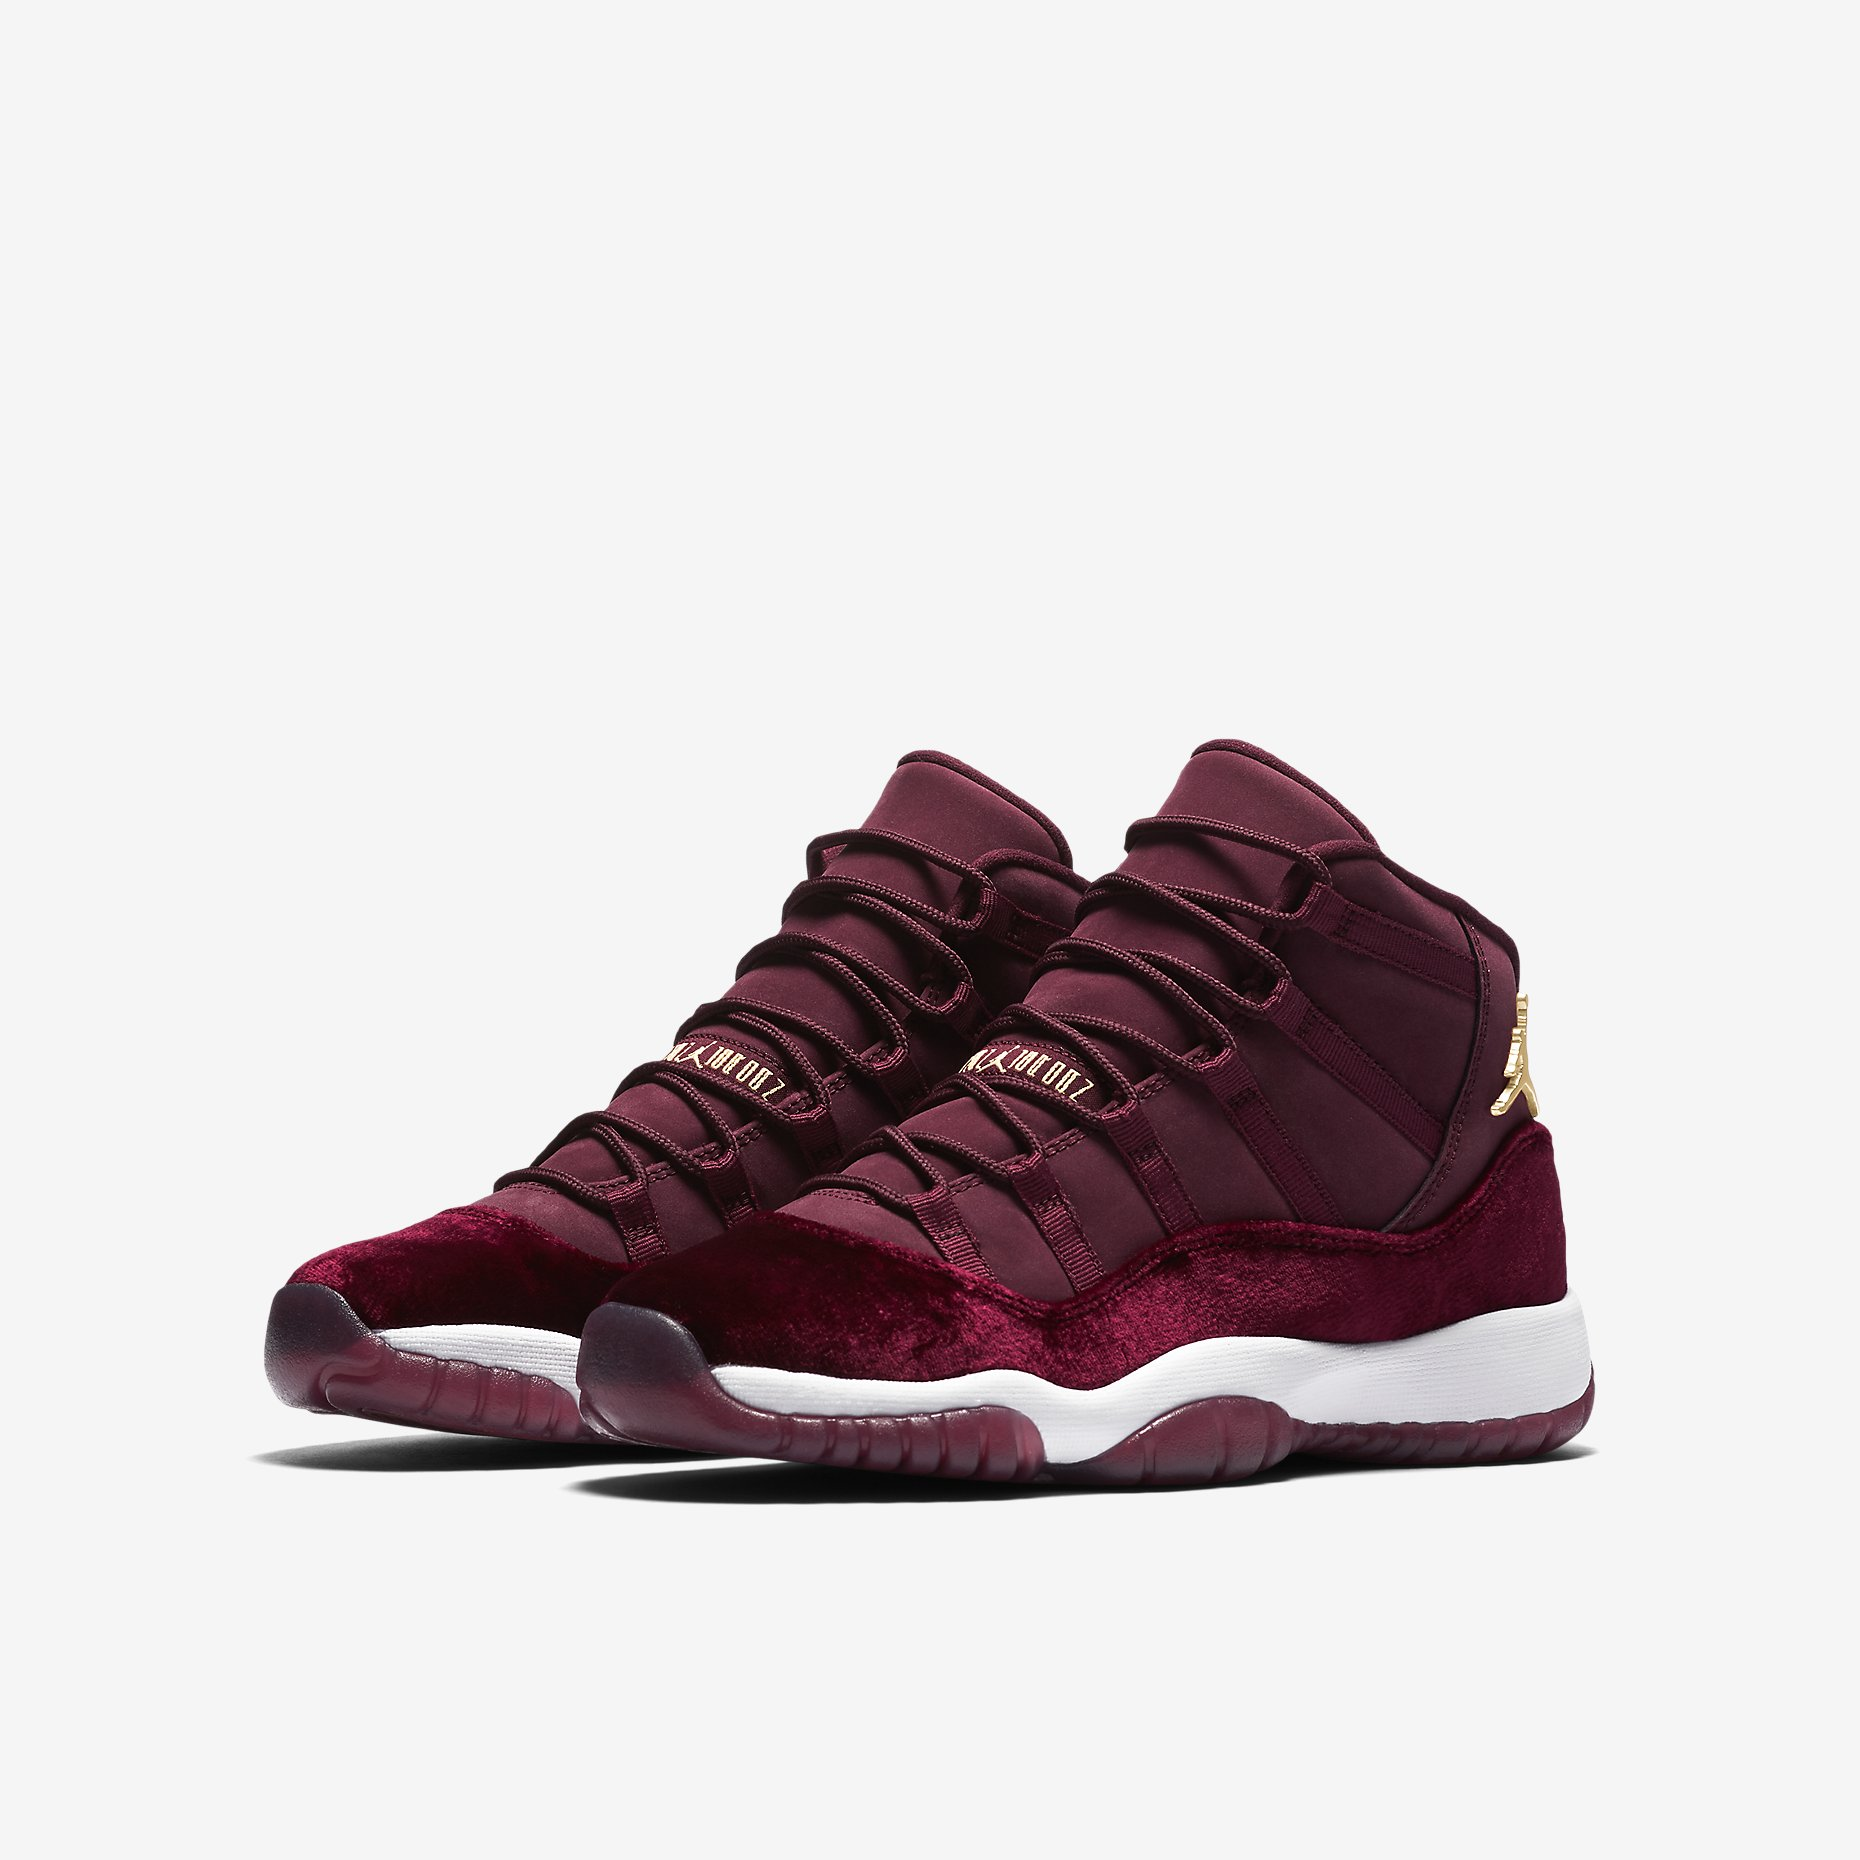 b4eb0b2269ae Air Jordan 11 Retro Heiress Red Velvet - HotKicks